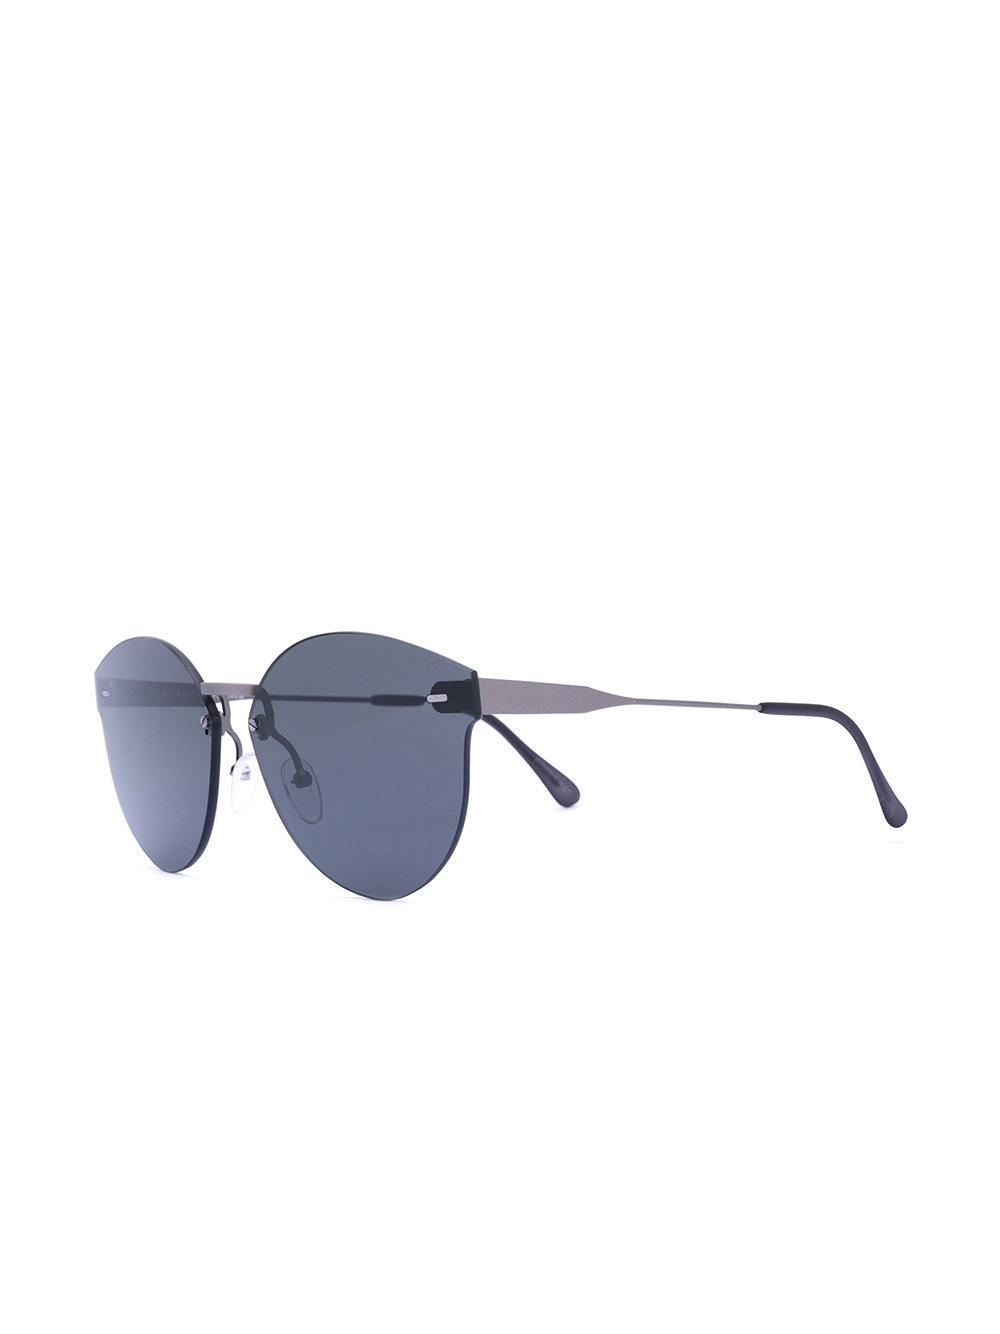 3de6637ebd8 Retrosuperfuture Frameless Sunglasses in Black - Lyst